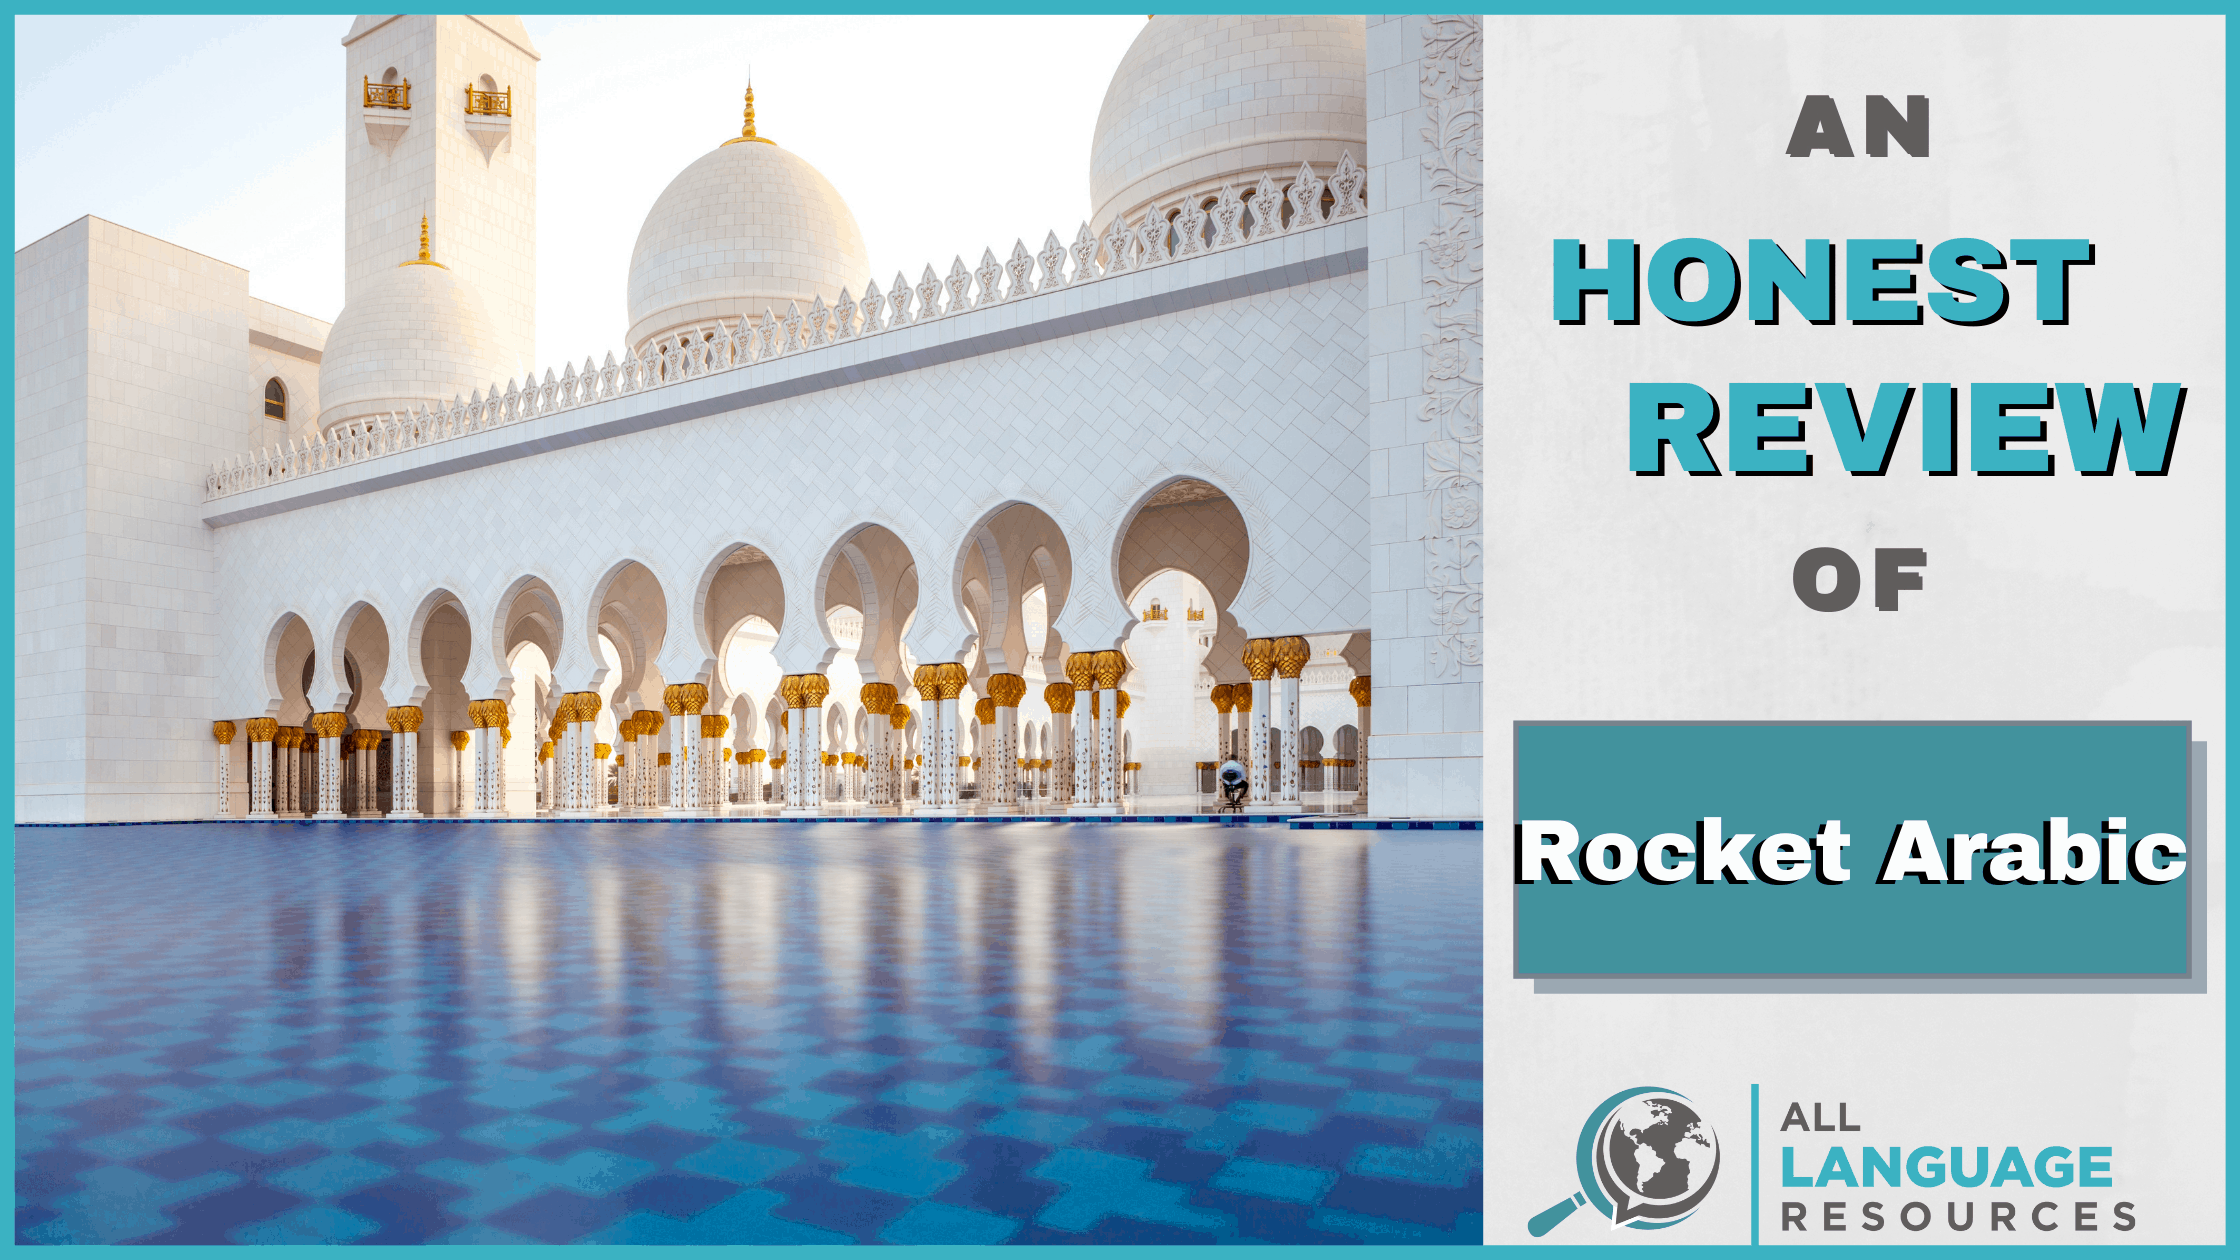 An Honest Review of Rocket Arabic With Image of Arabian Architecture